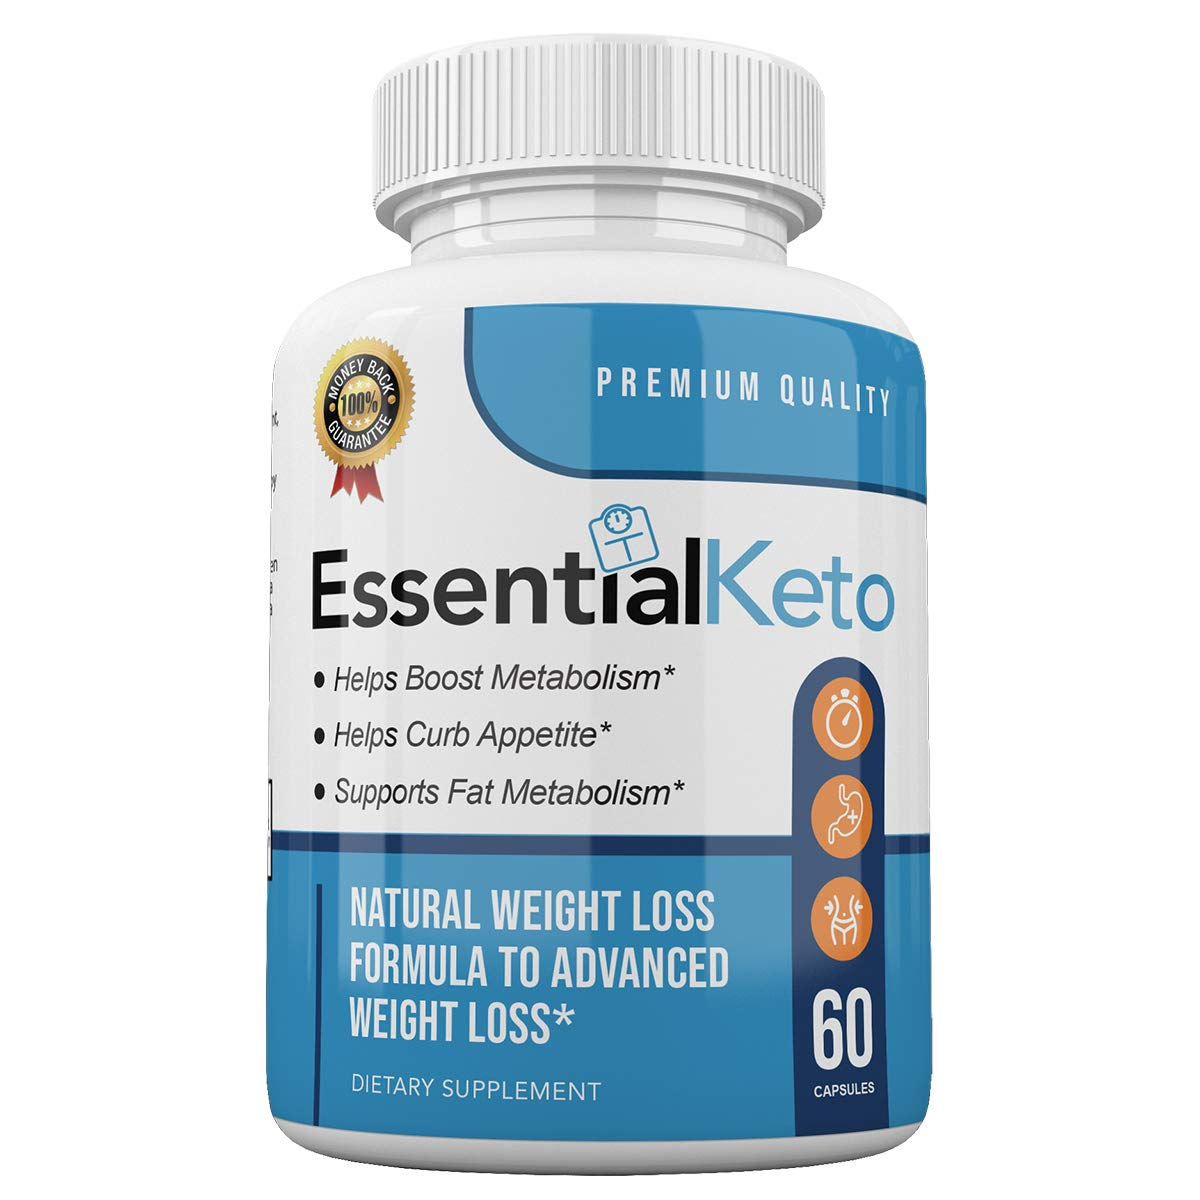 Essential Keto - Premium Quality - Boost Metabolism - Curb Appetite - Advanced Weight Loss Formula - 30 Day Supply - 60 Capsules